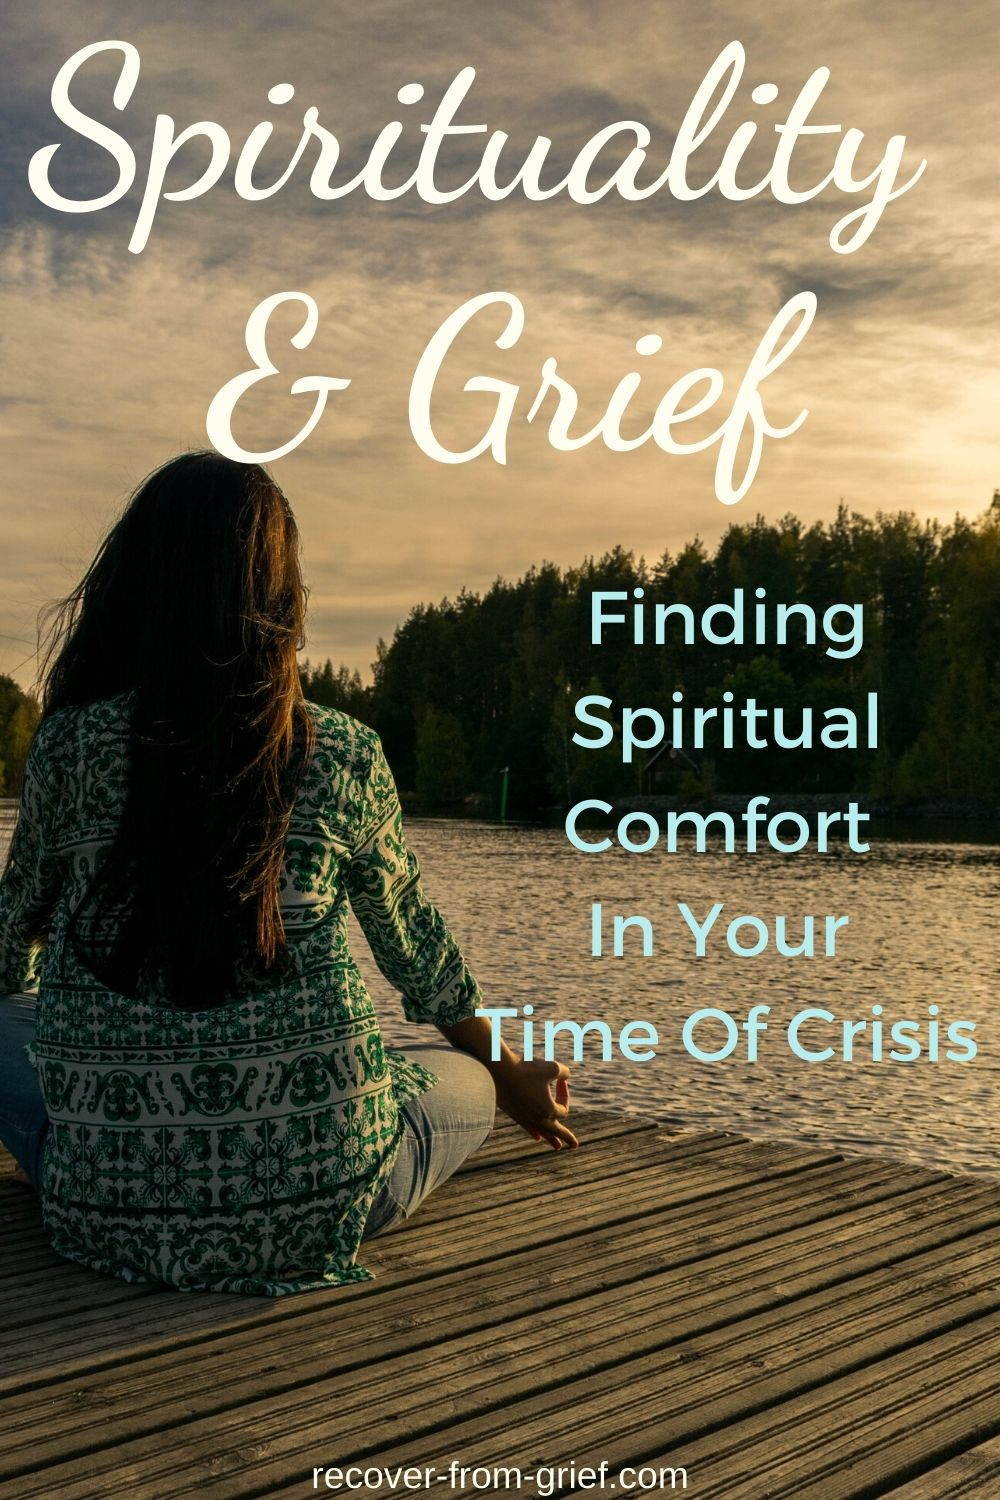 Spirituality and grief - Finding spiritual comfort in your time of crisis